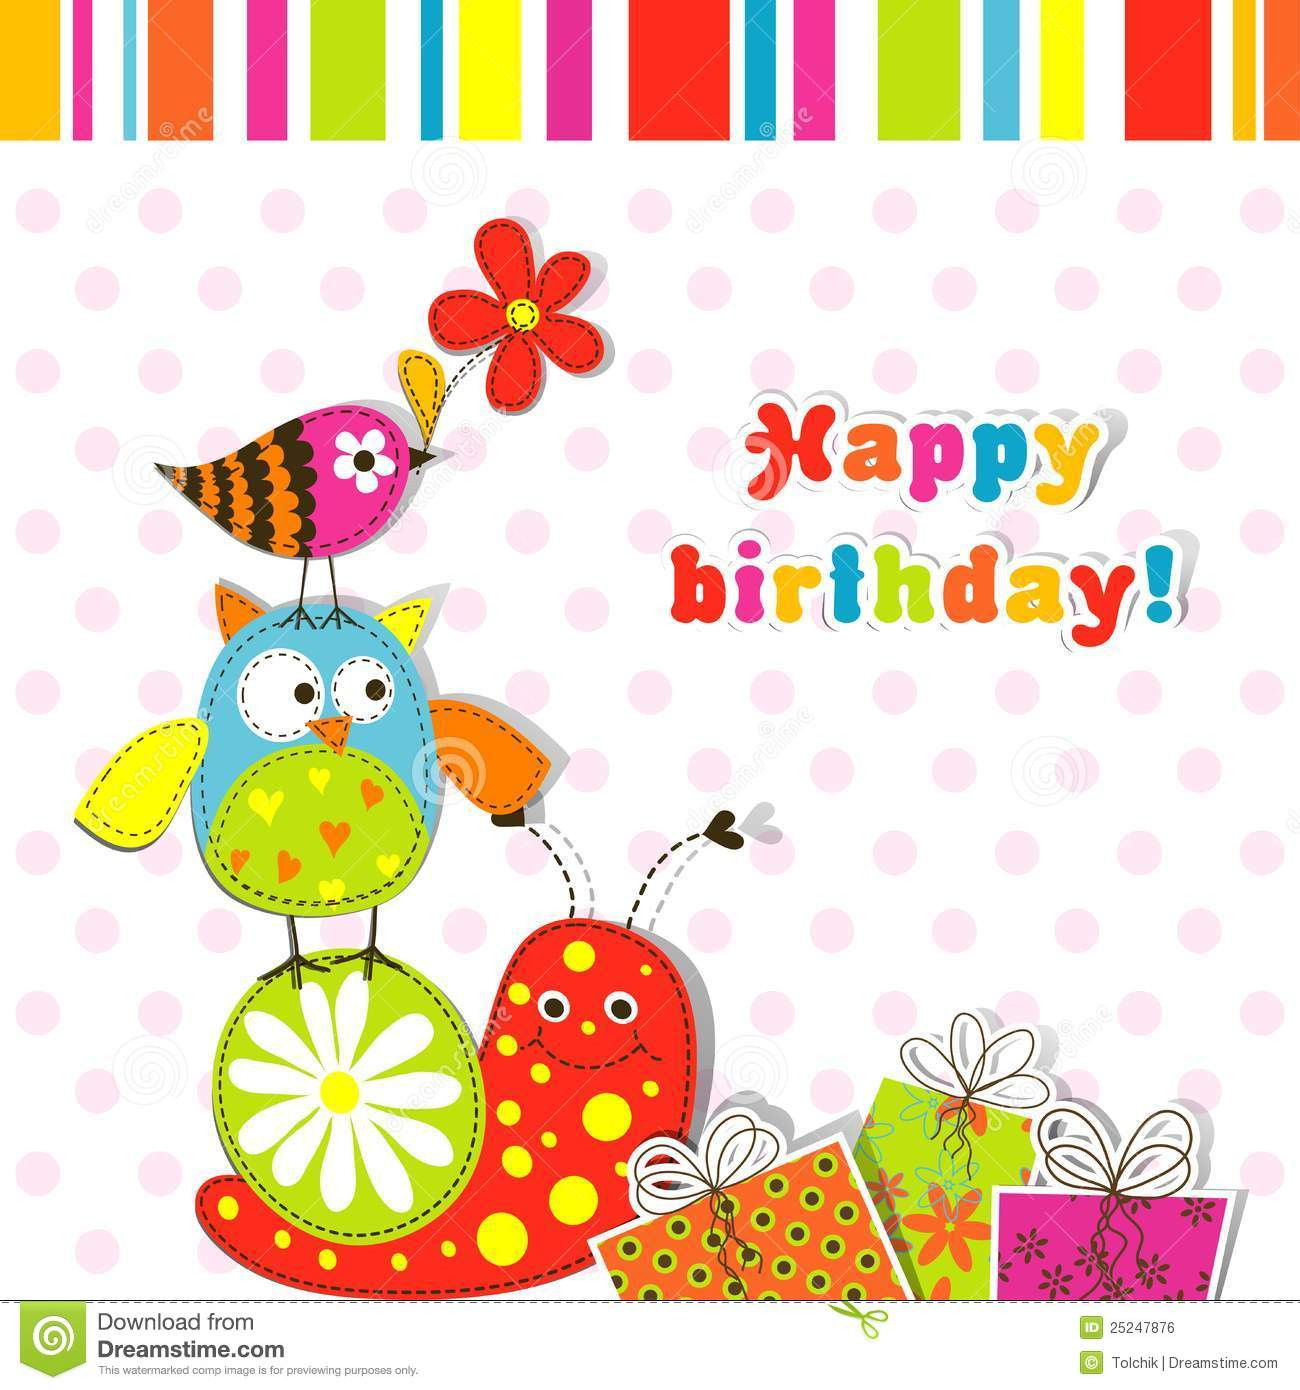 Best ideas about Free Birthday Card Template . Save or Pin Birthday Card Template Now.